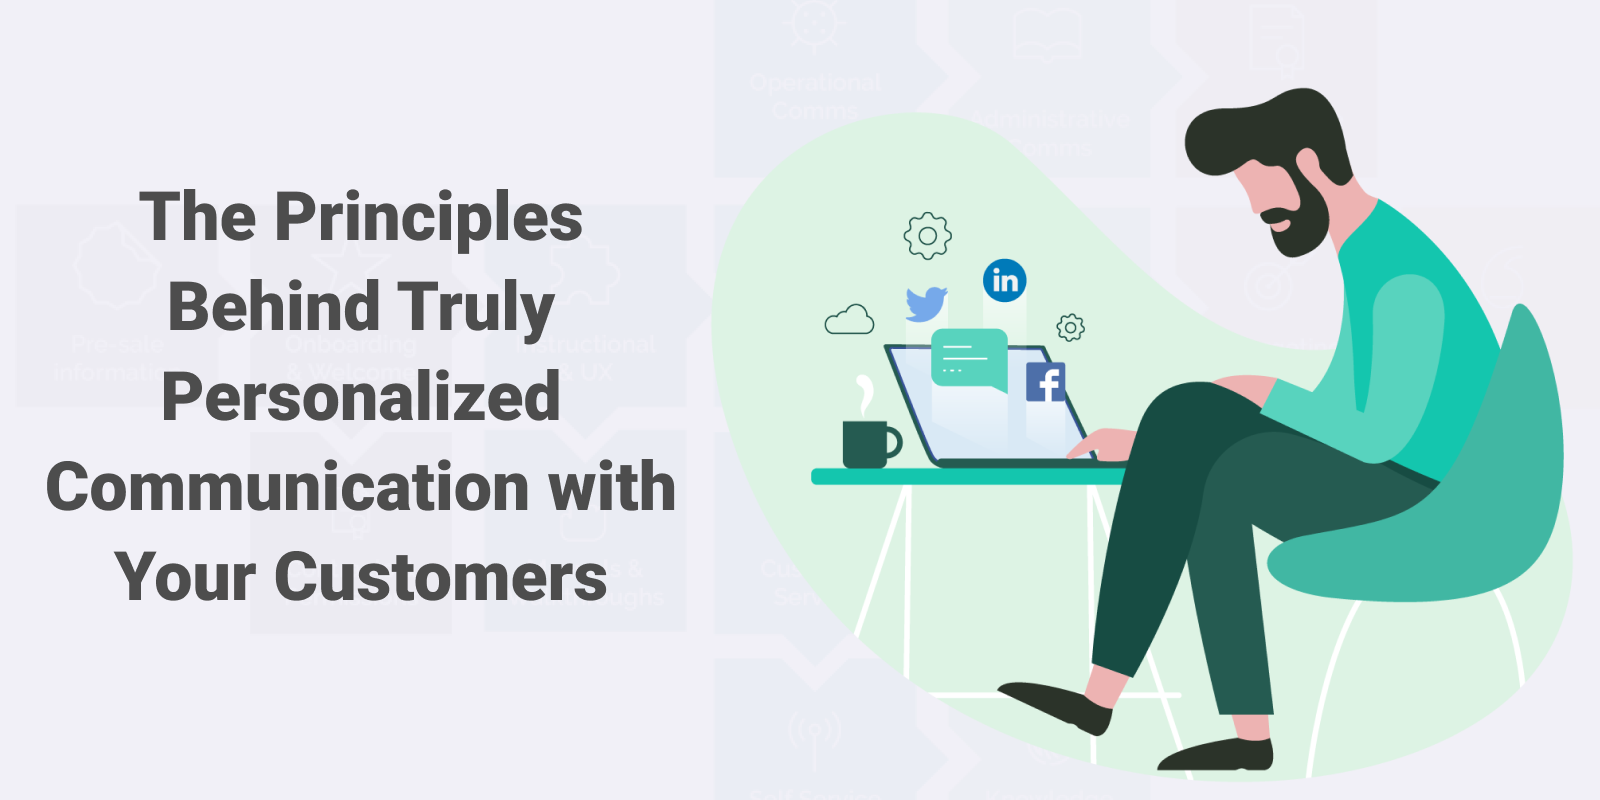 The Principles Behind Truly Personalized Communication with Your Customers